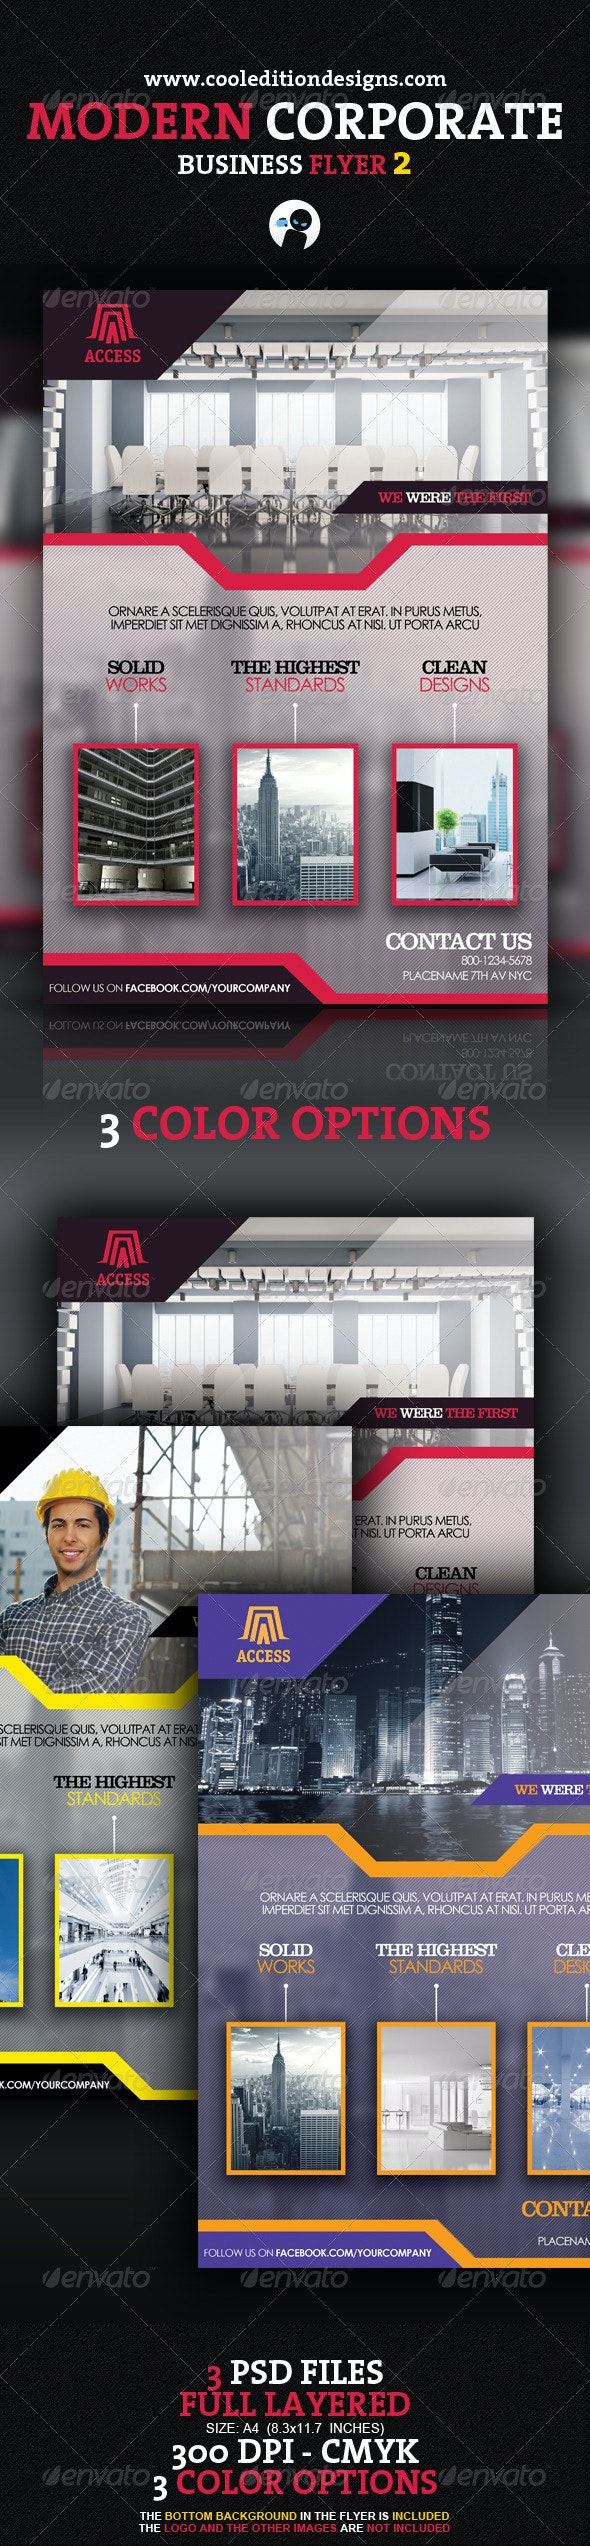 Modern Corporate Business Flyer 2 - Corporate Flyers